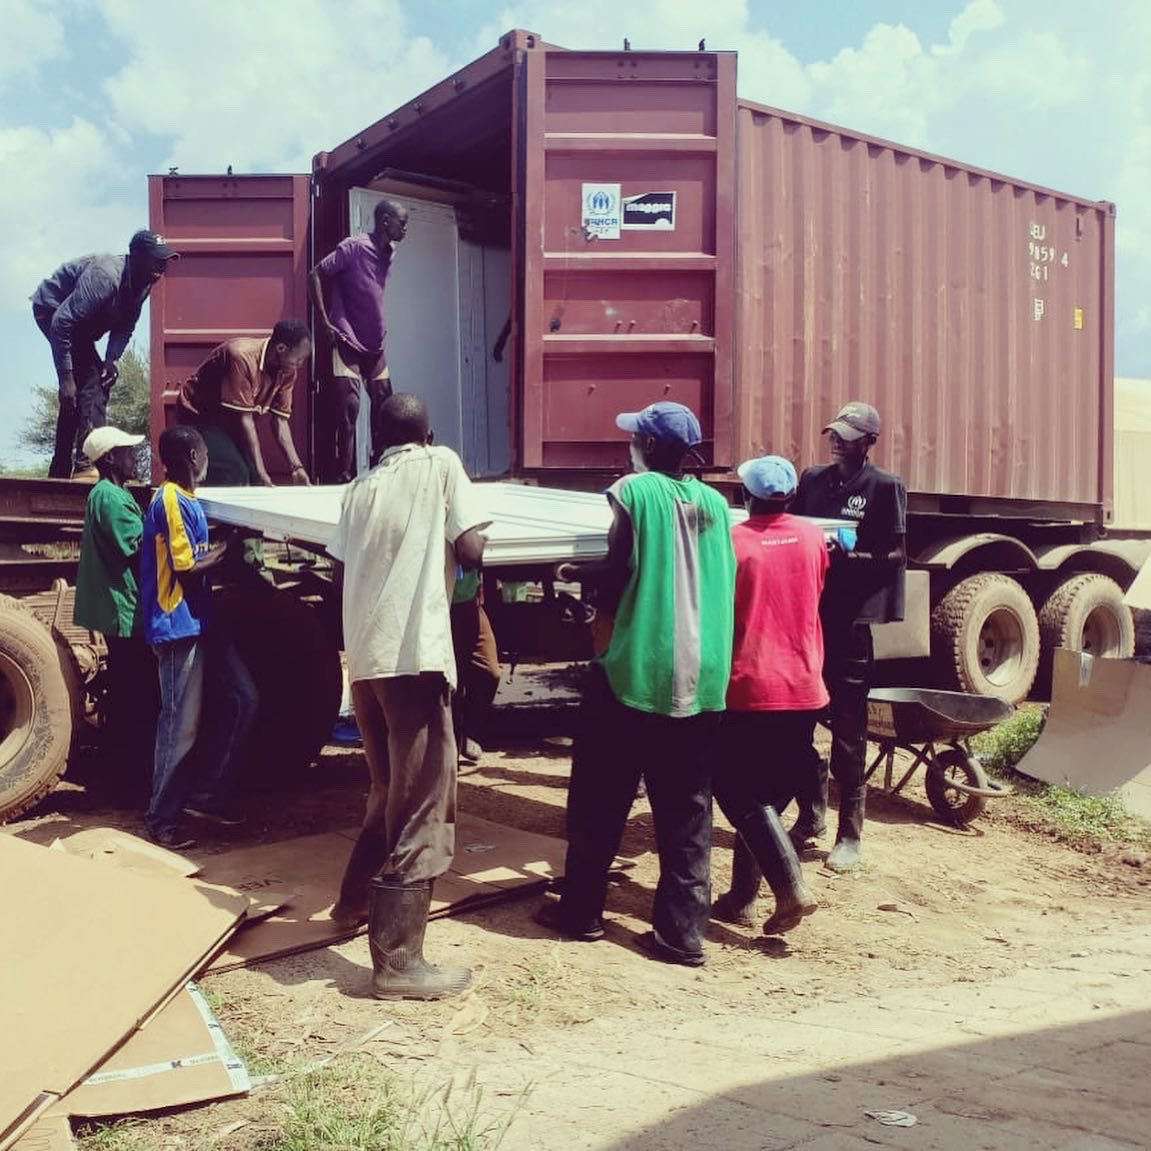 Our new school arrived in #Kakuma! 🙌 @UNHCRBelgie @MaggieProgram @SDGLabSchools projectkakuma.com